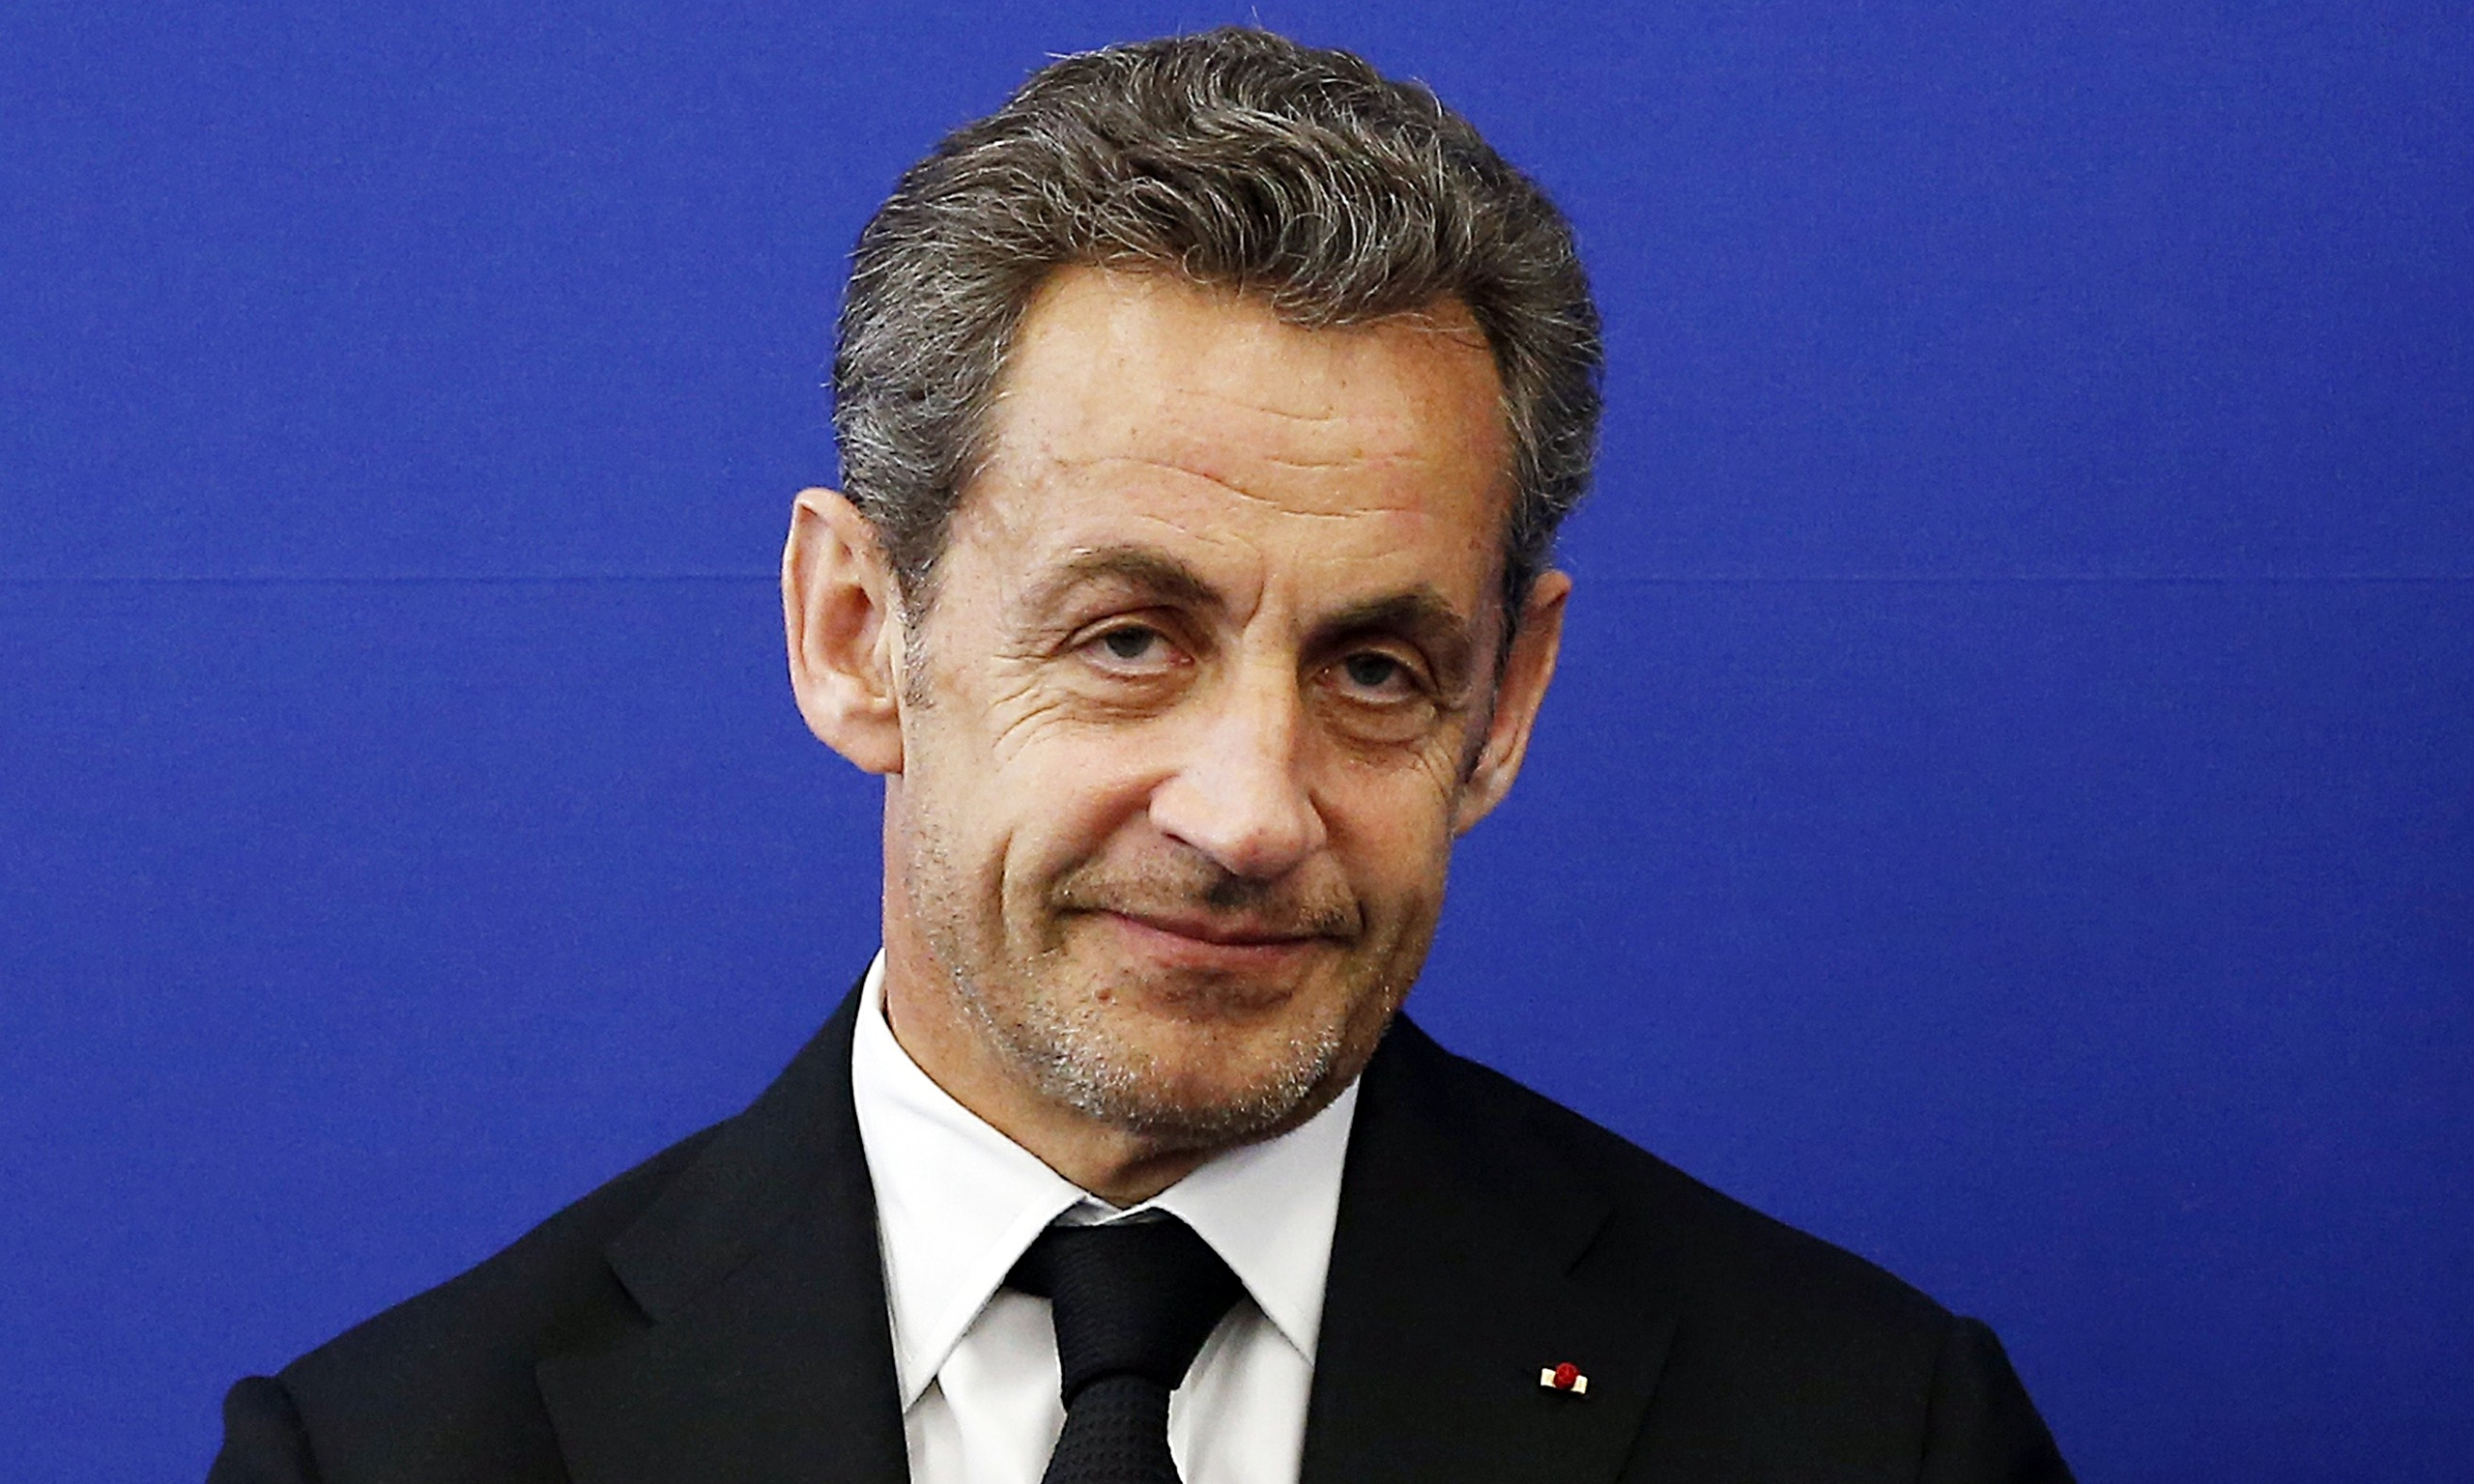 sarkozy - photo #35